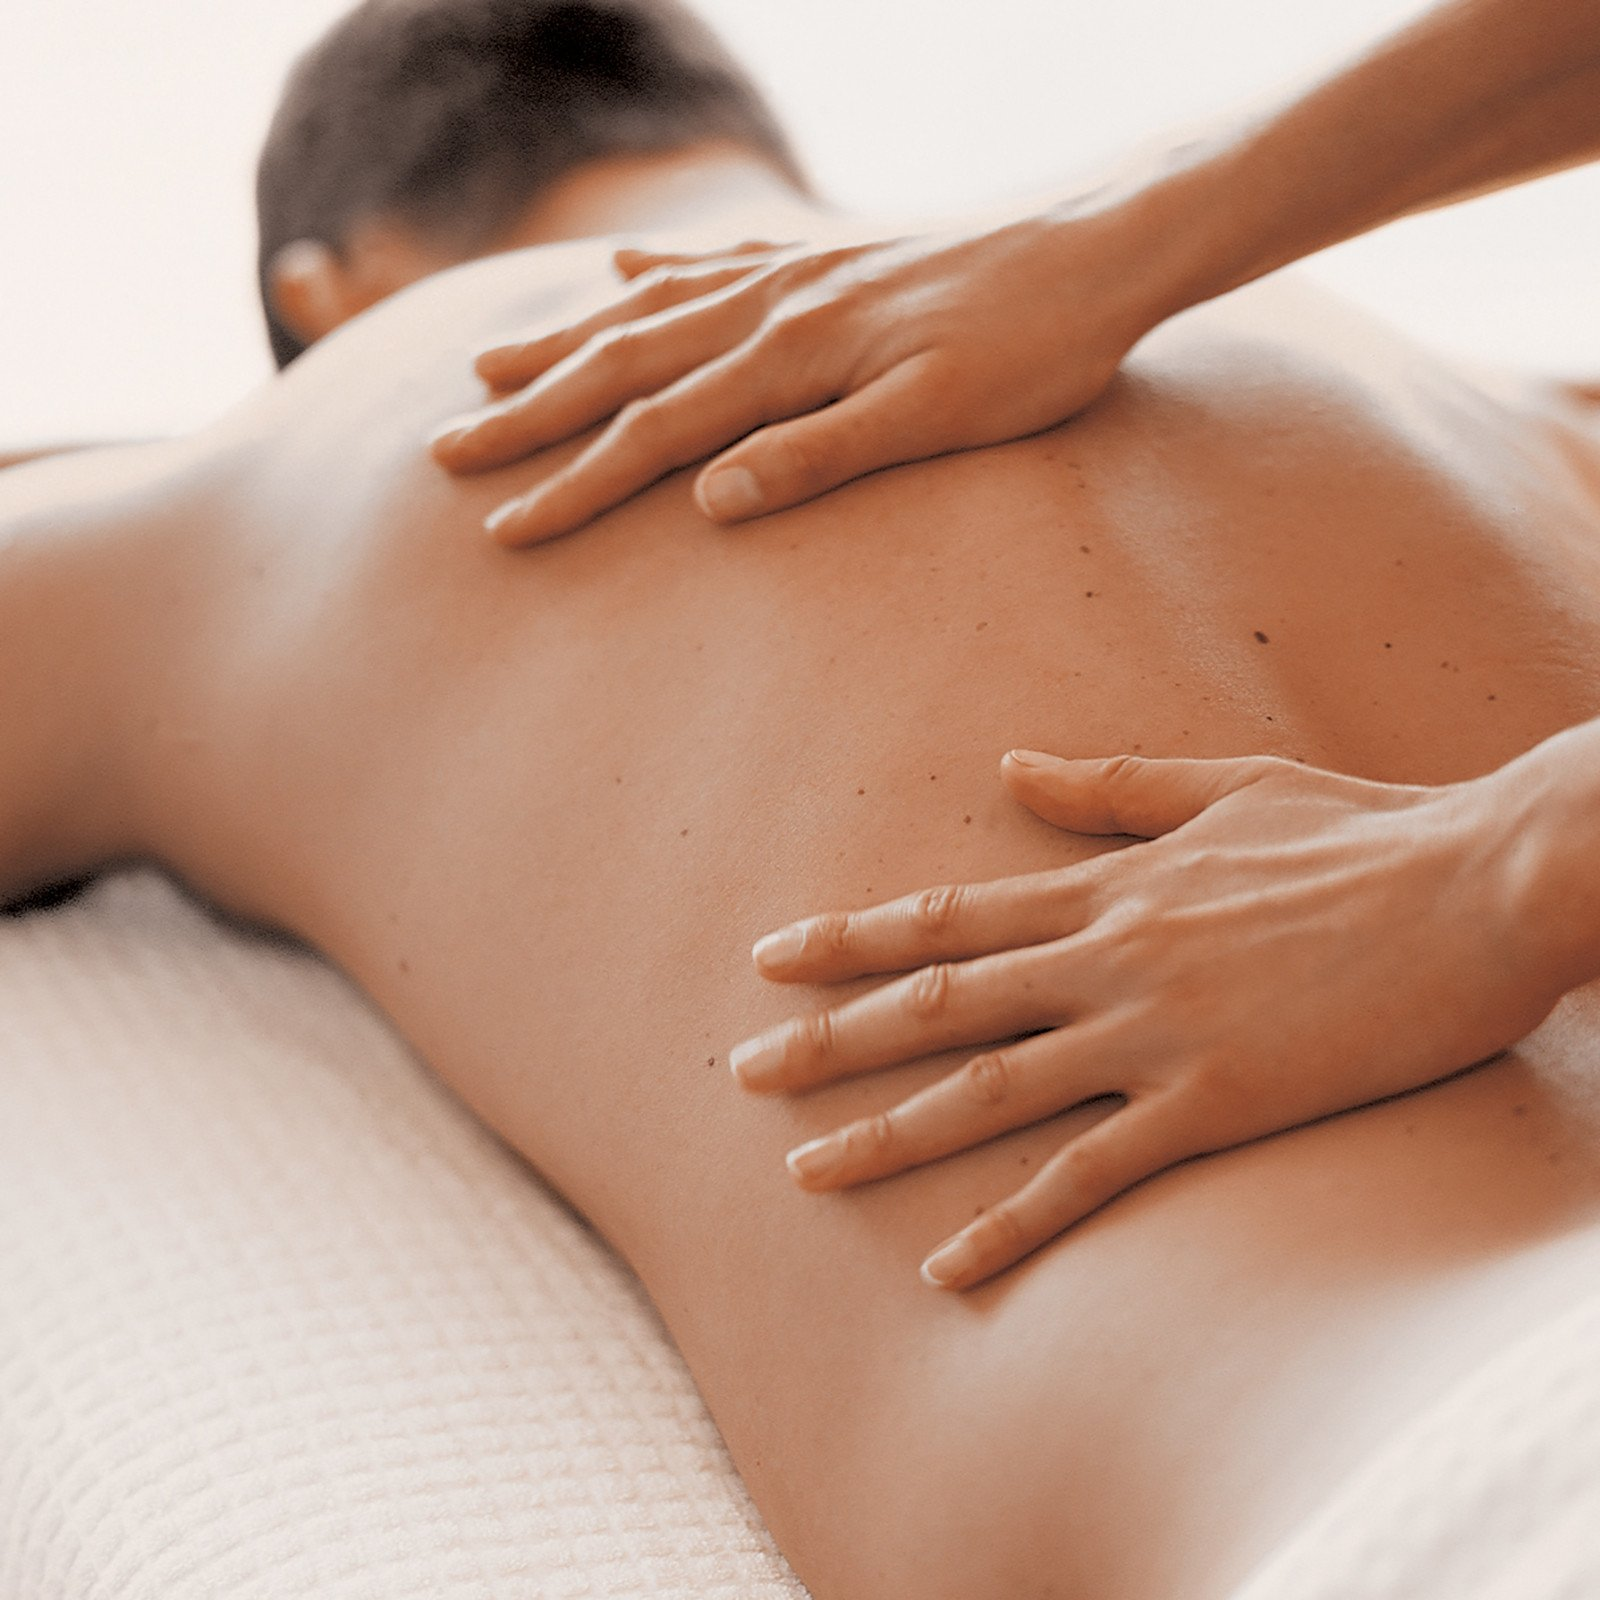 How to Choose the Right Therapist for Your Massage So Both You and the Therapist Have a Good Session